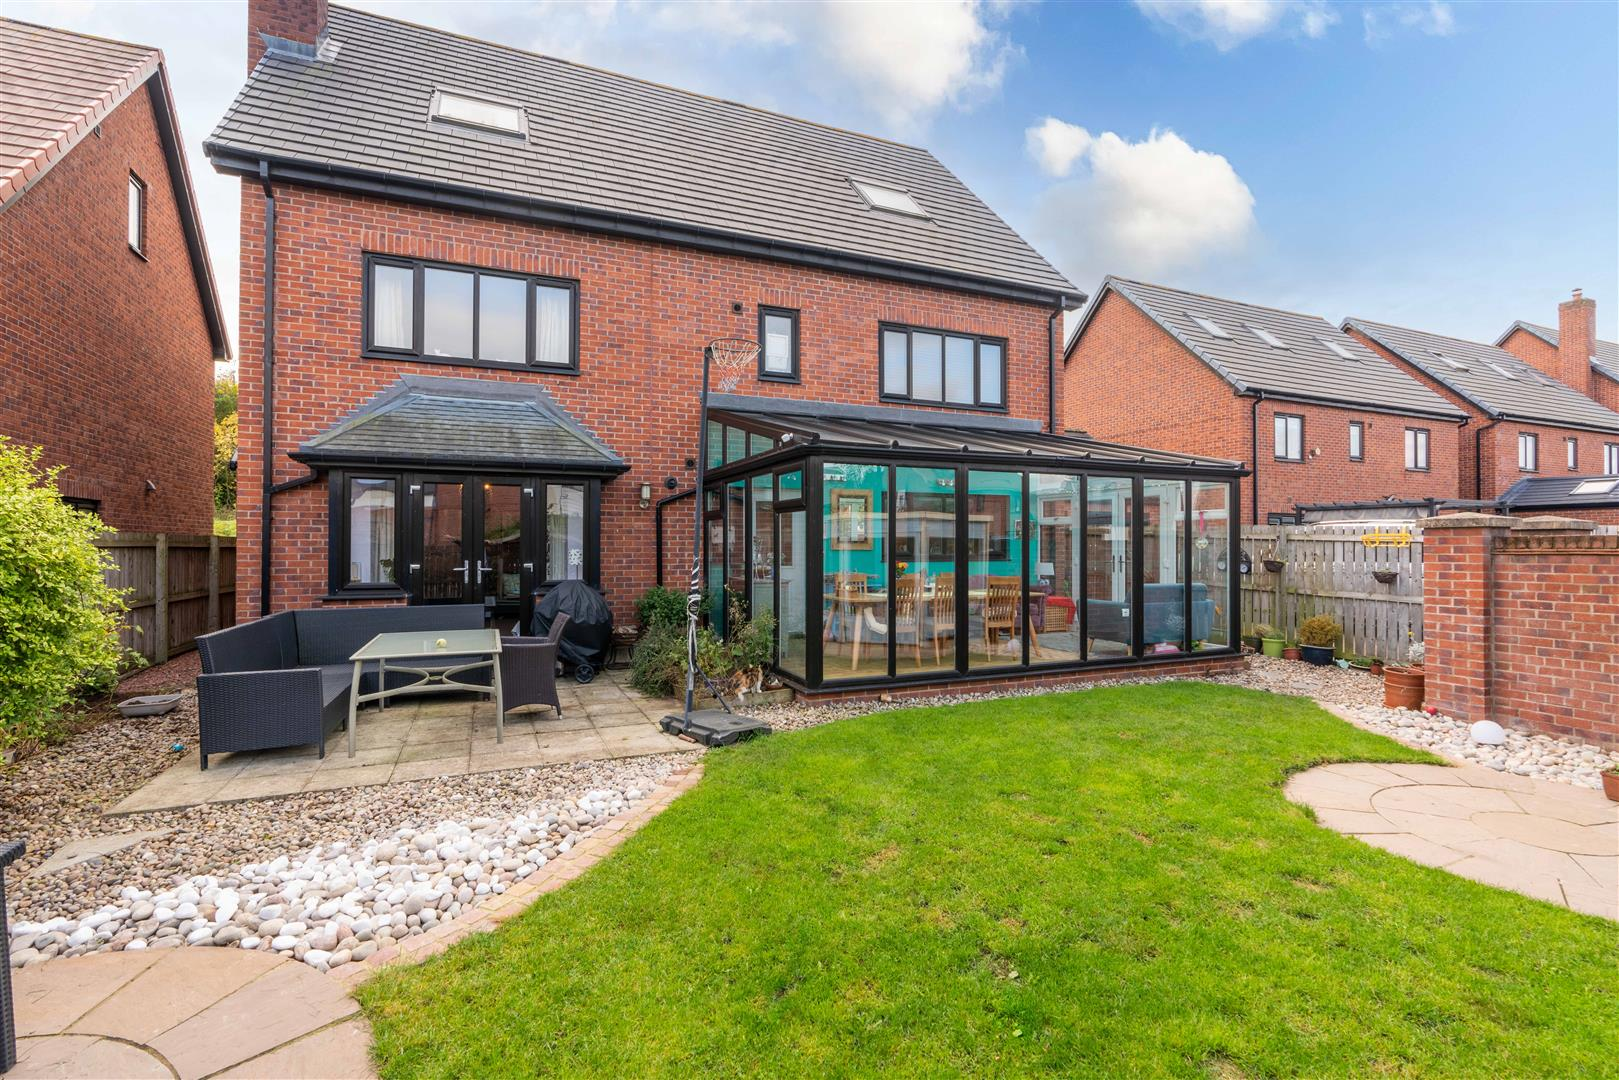 6 bed detached house for sale in Abberwick Walk, Newcastle Upon Tyne  - Property Image 4